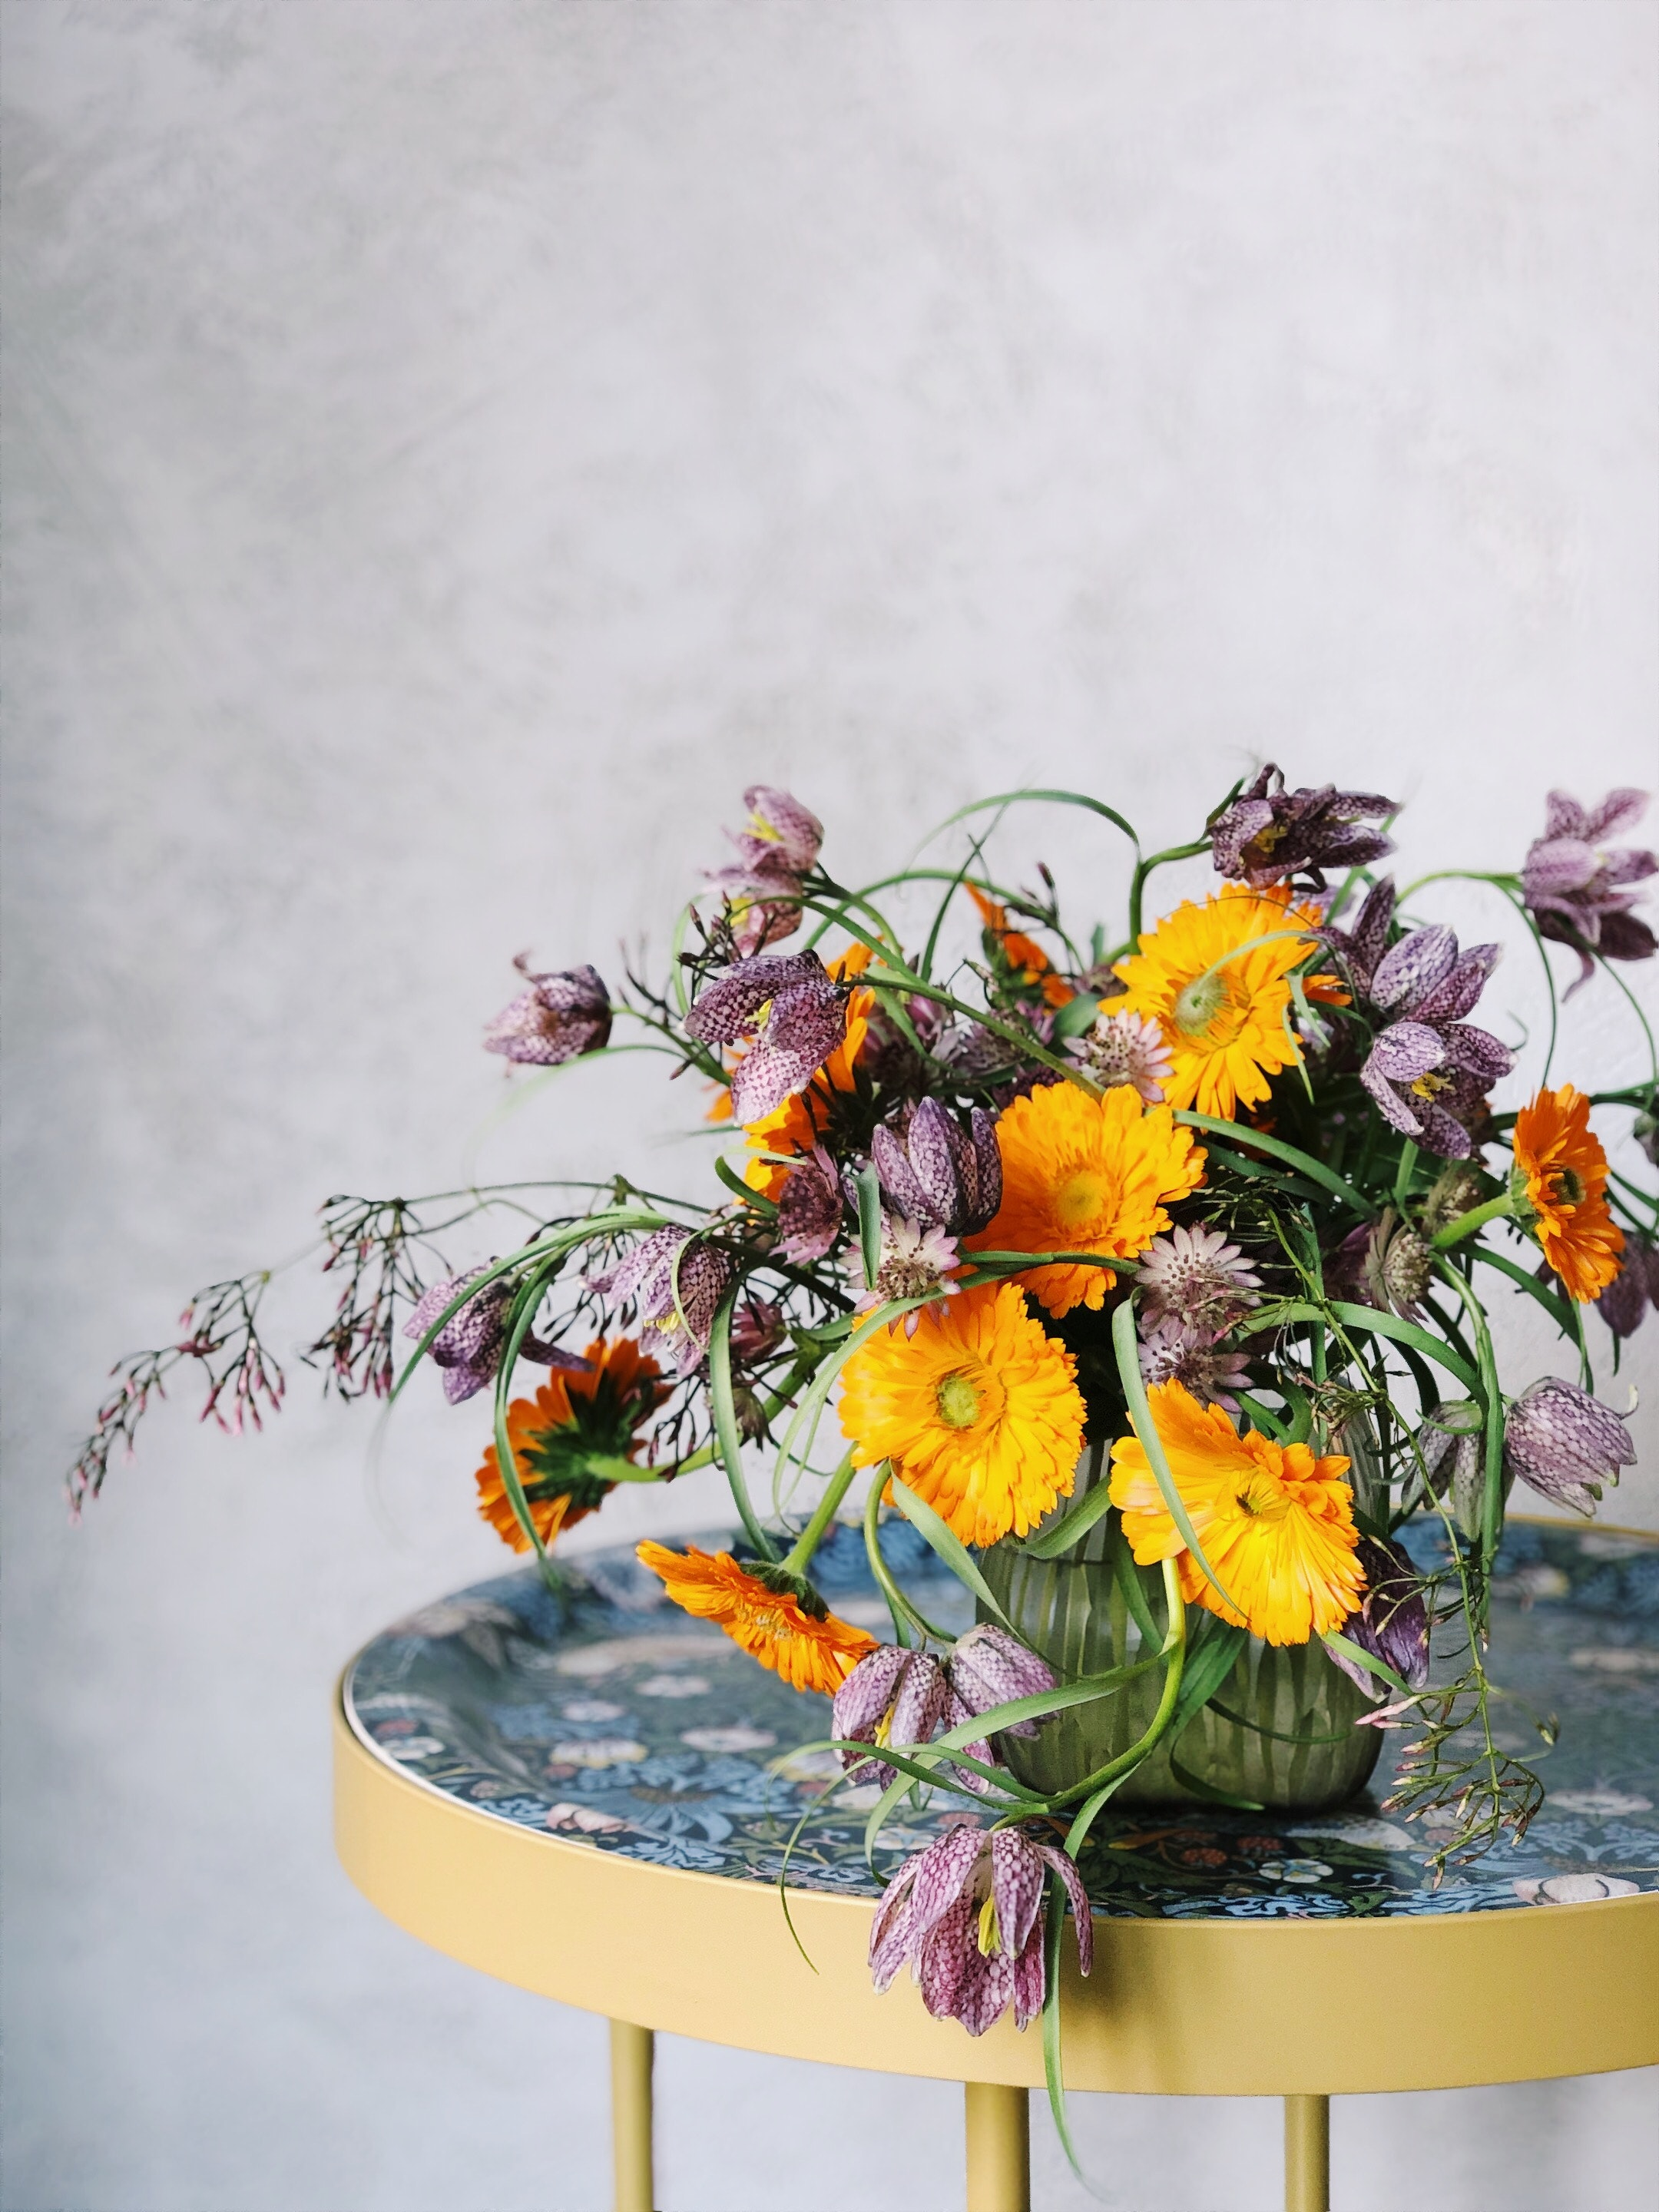 Potted yellow and purple cluster flowers free stock photo free download mightylinksfo